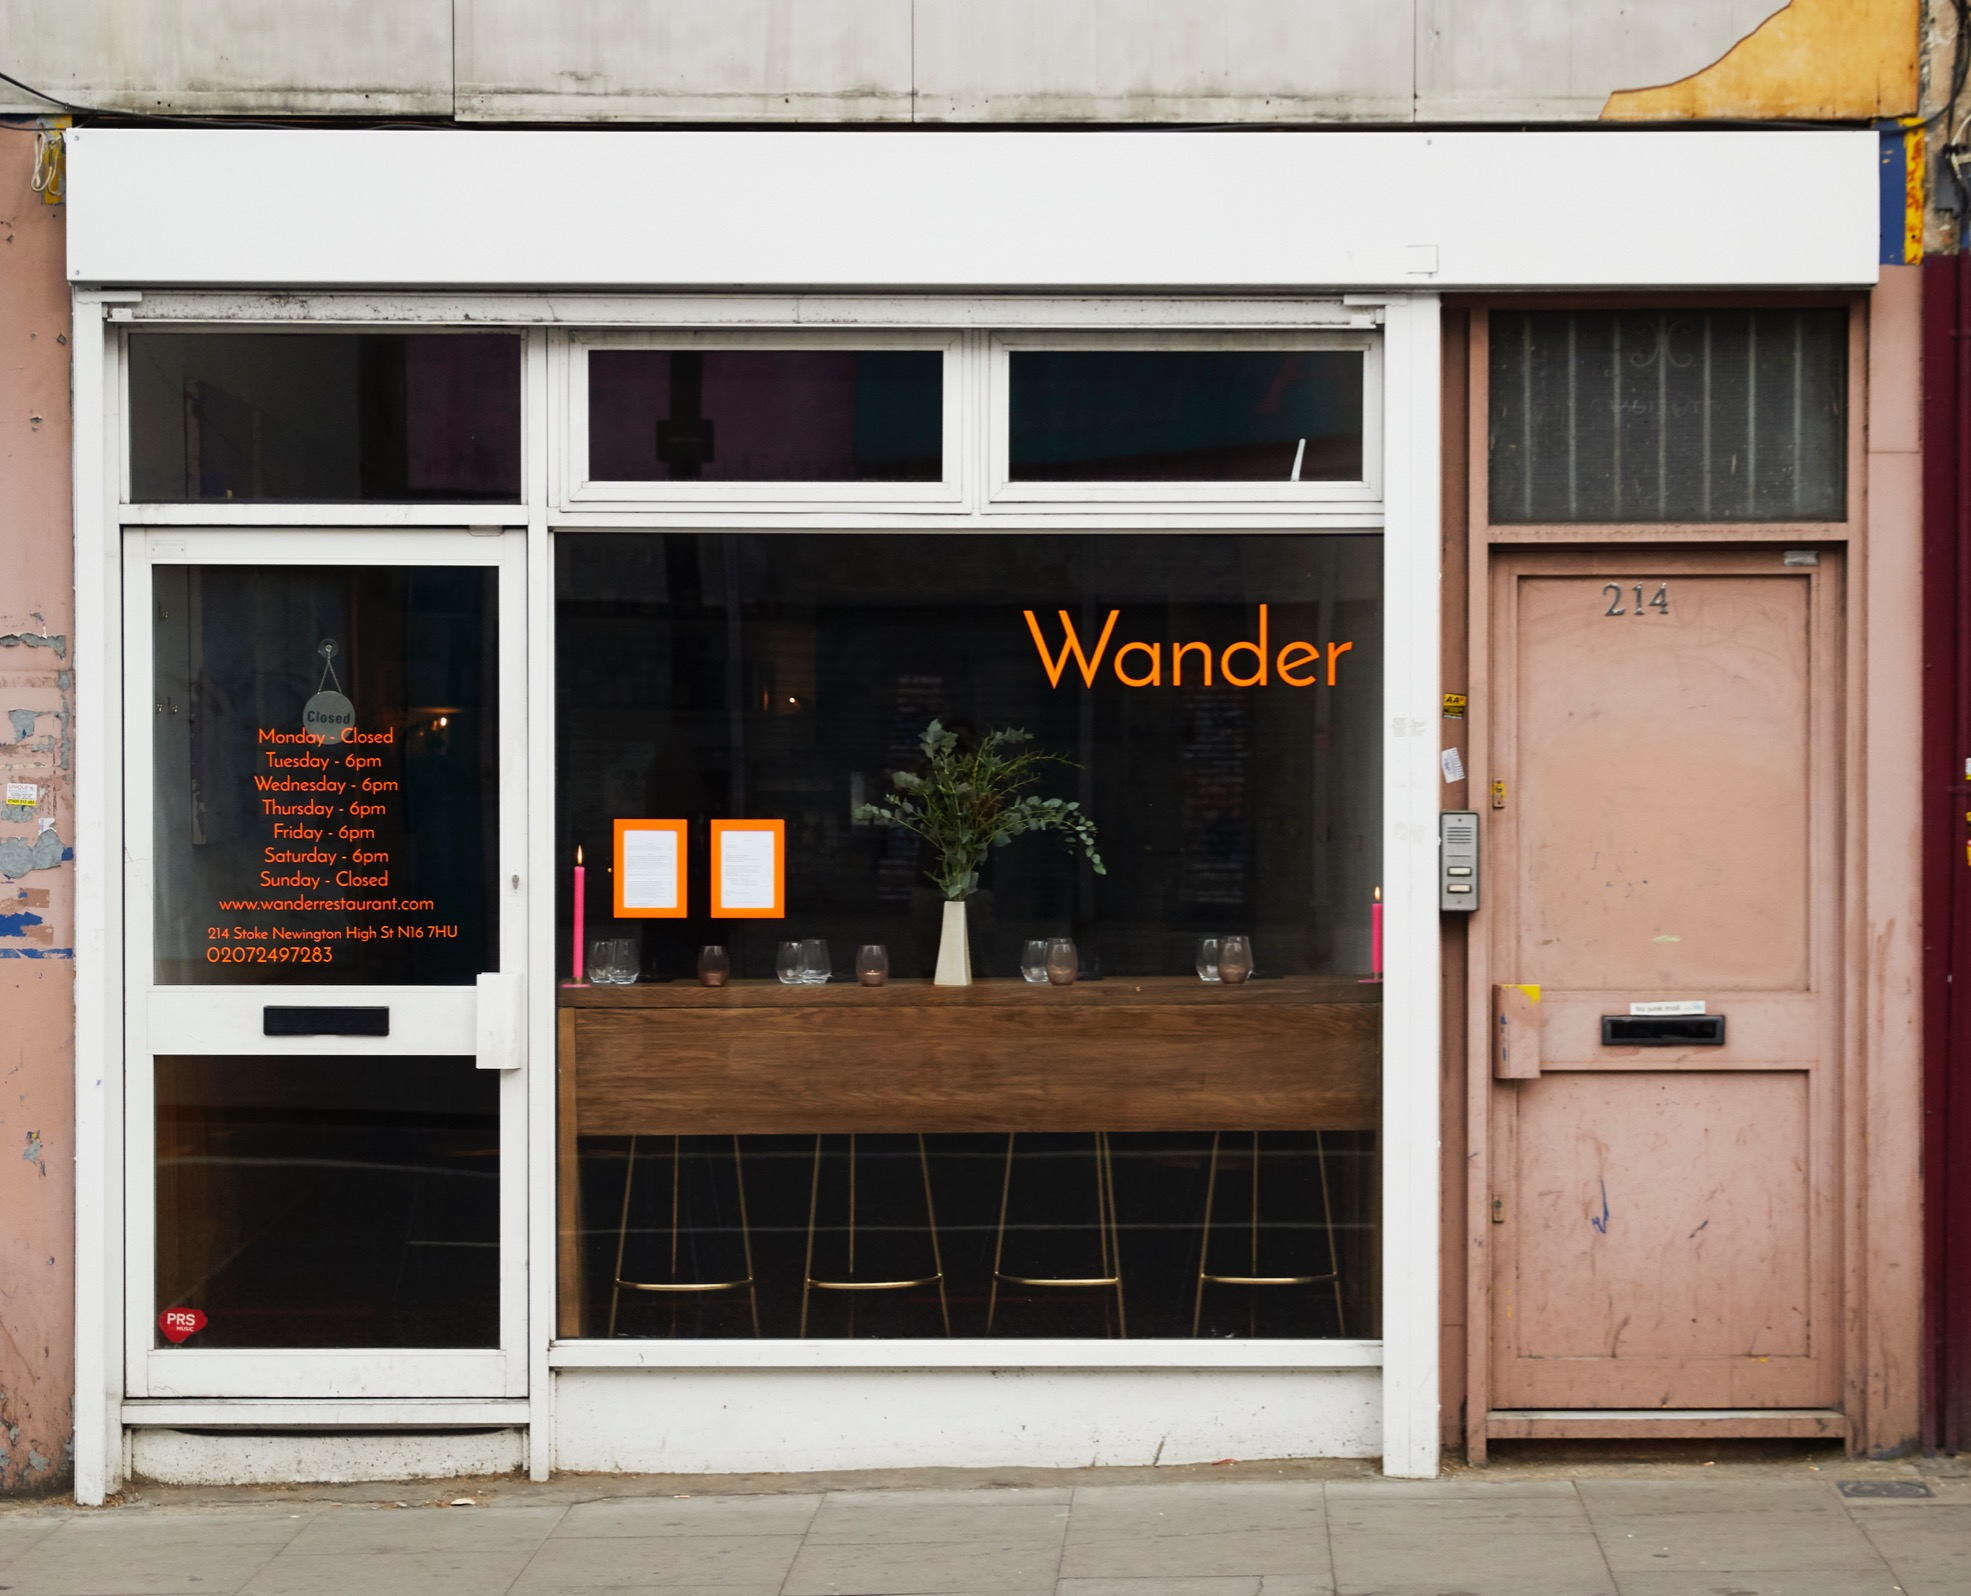 The front of Wander restaurant on Stoke Newington High Street in London